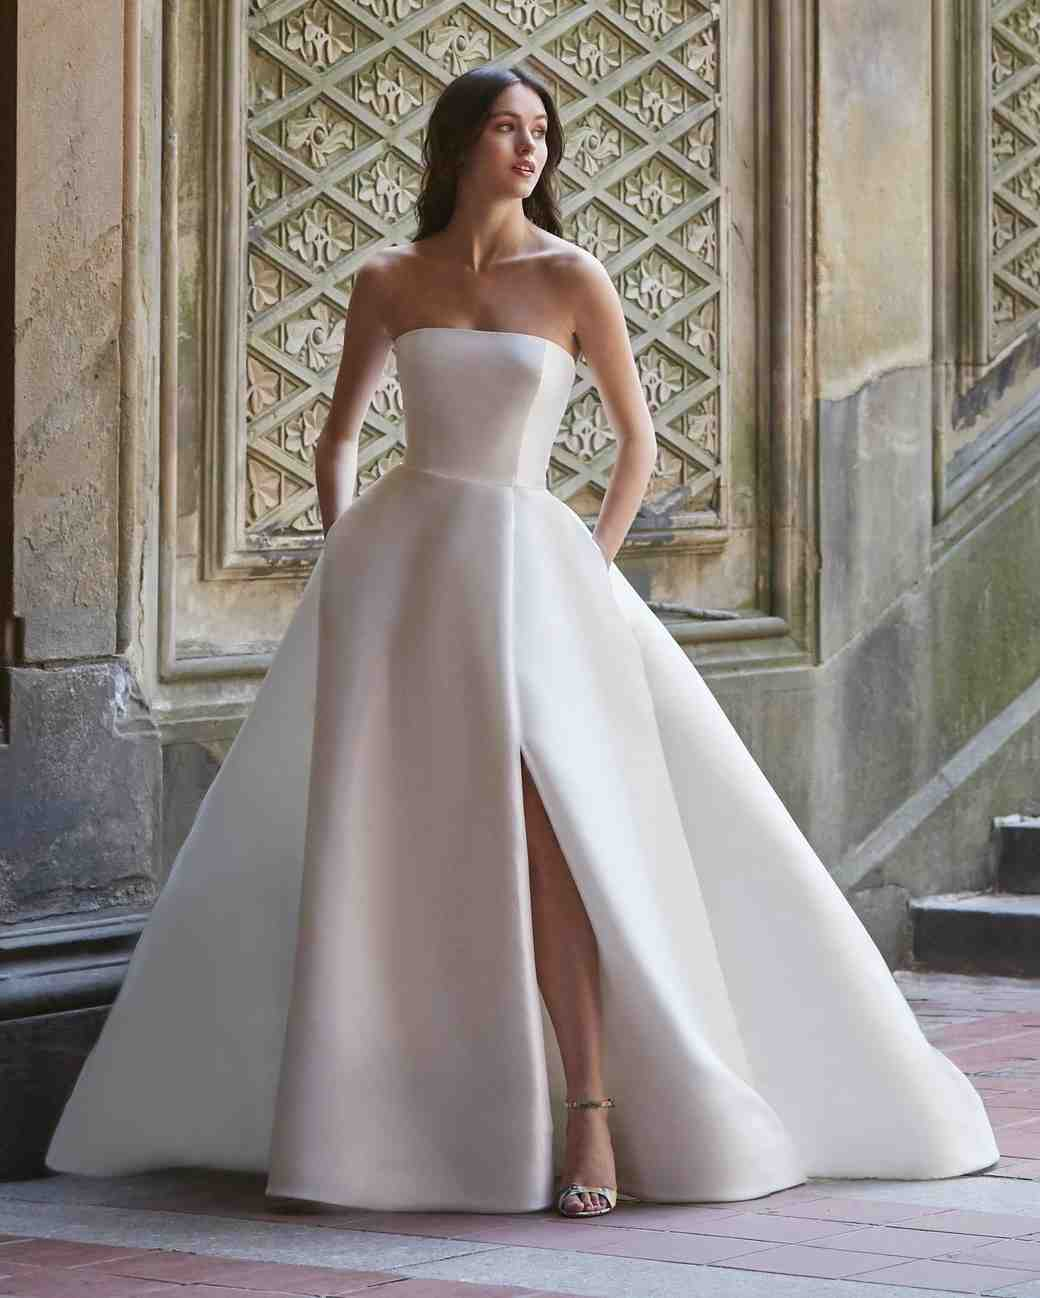 2019 Ball Gown Wedding Dresses: 21 Best Ball Gown Wedding Dresses In 2019